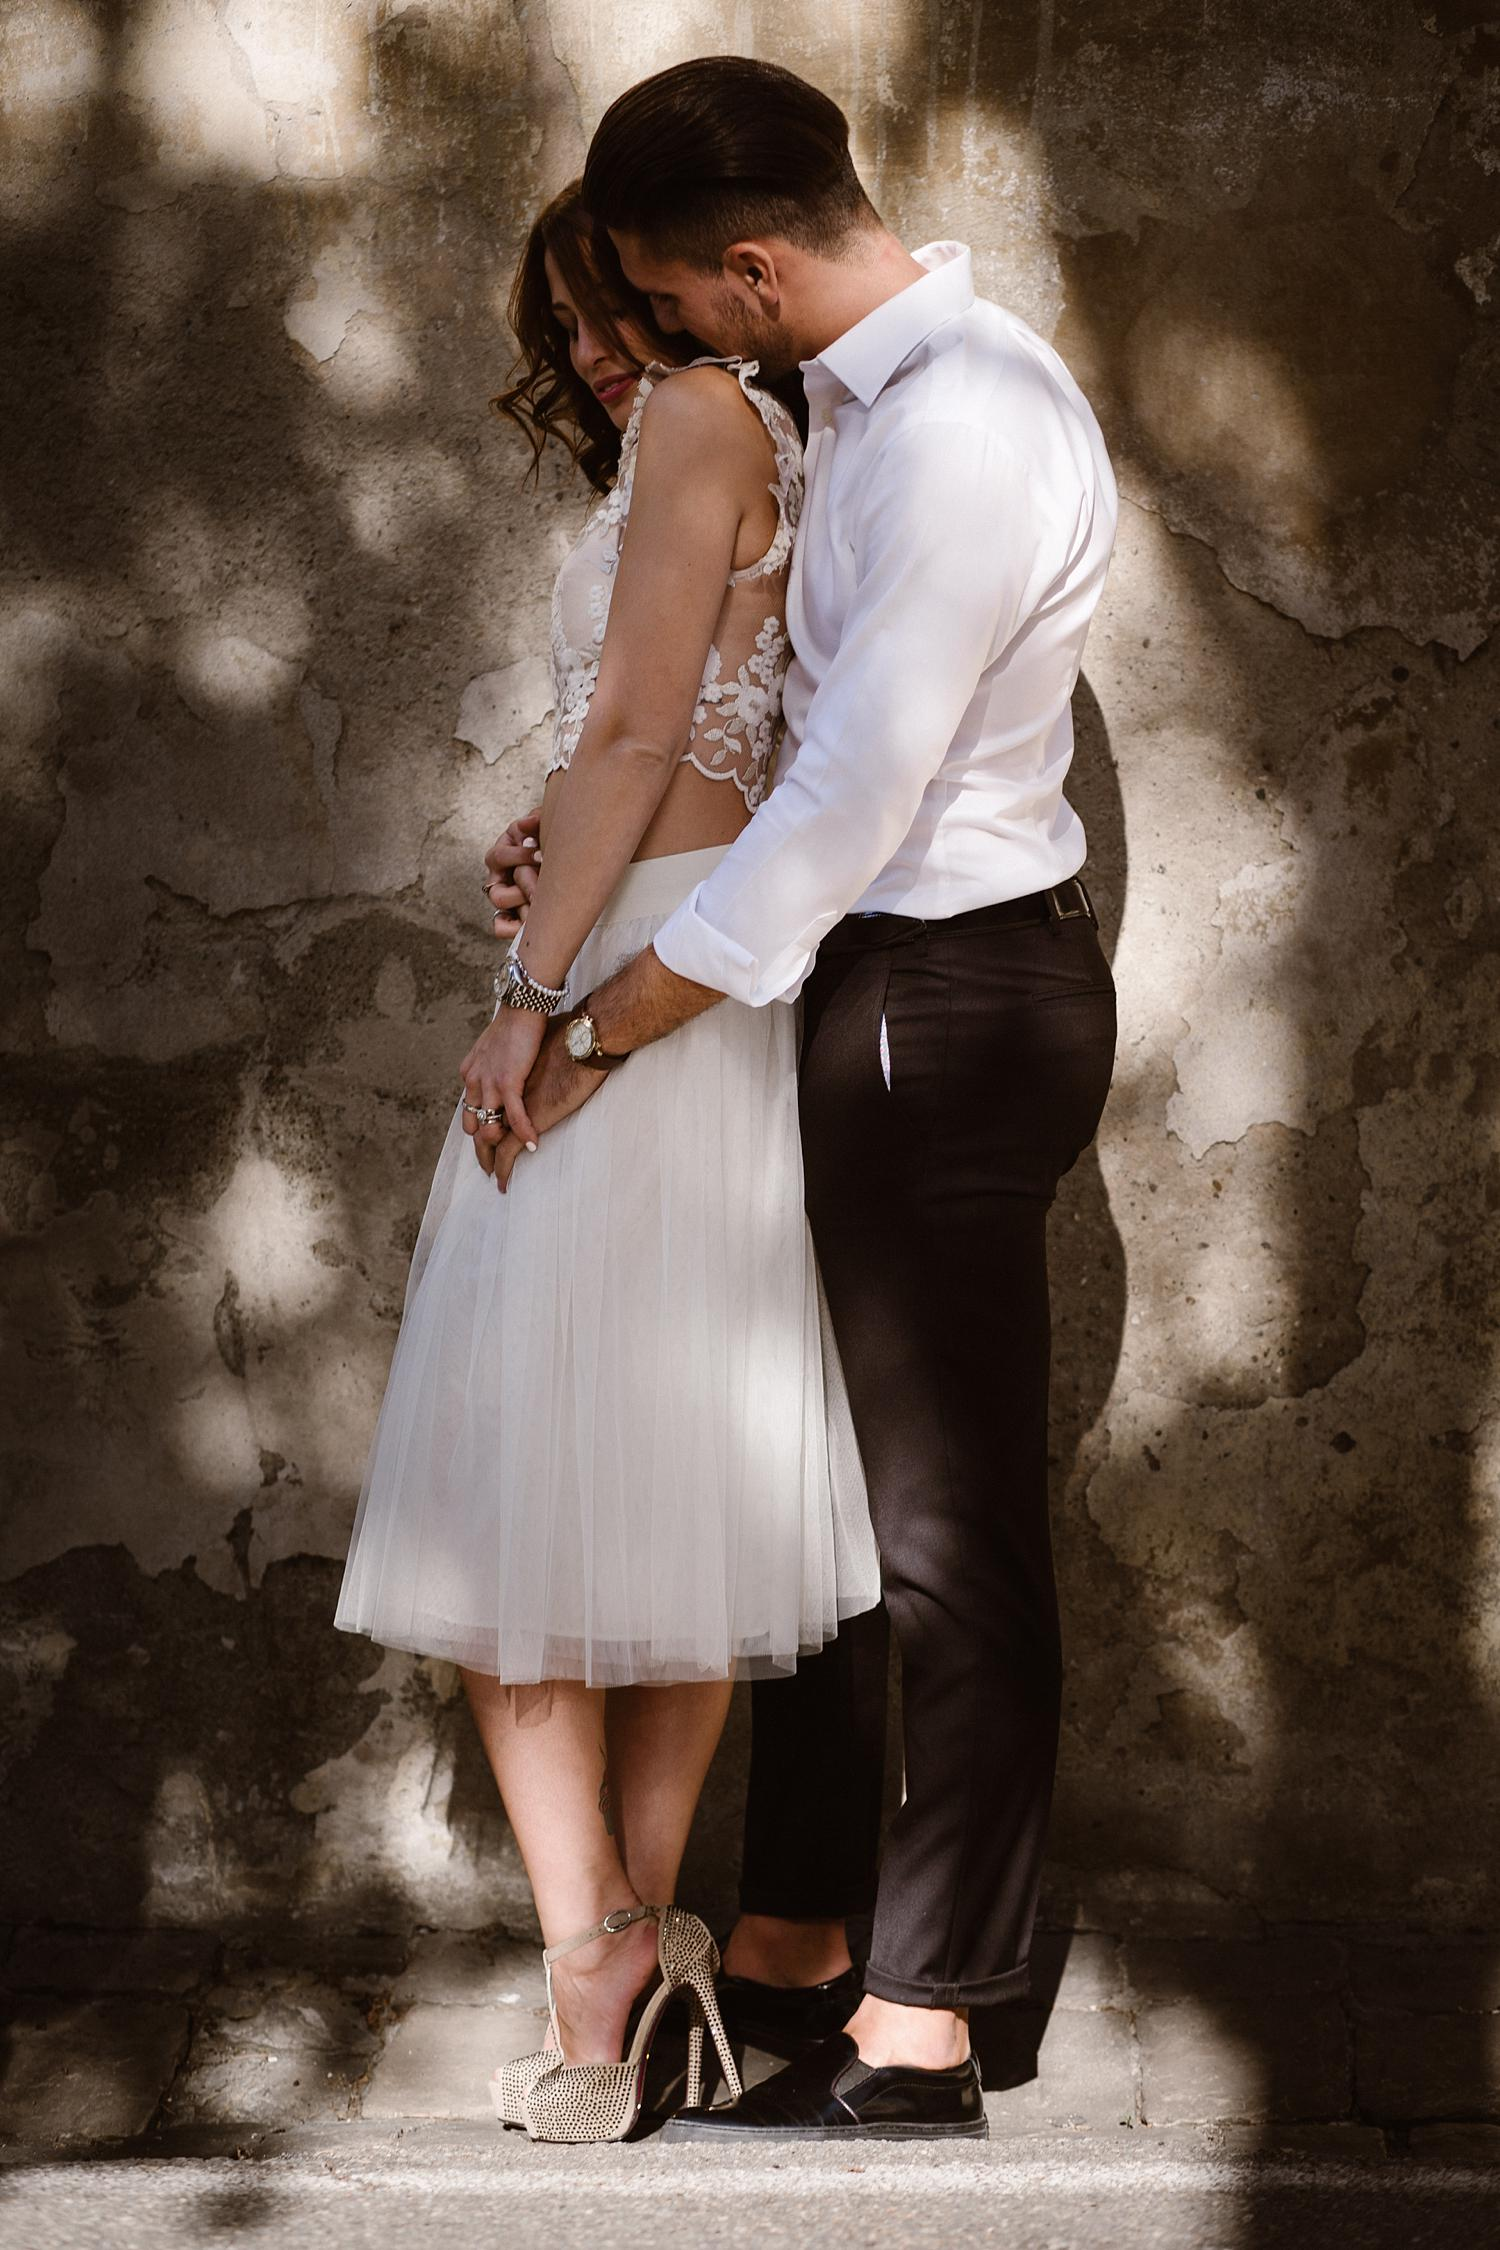 weddingphotographer florence 05 1 - Maddalena & Arturo - A Chic Anniversary Session in Florence